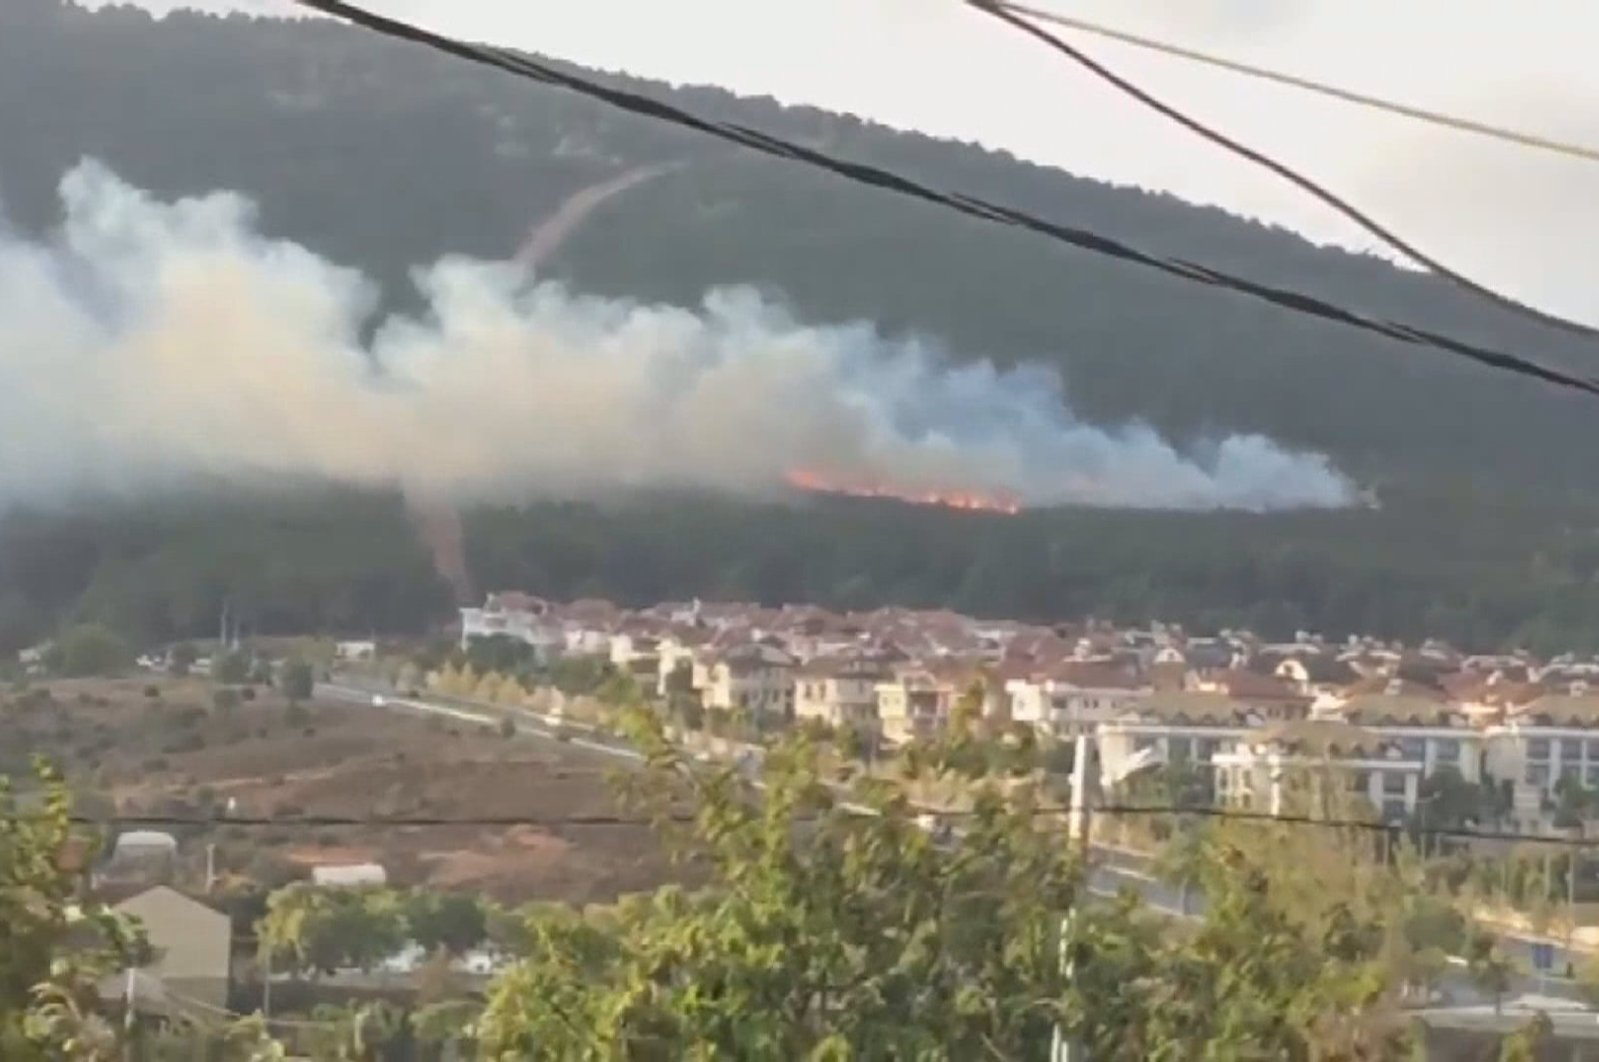 Some 4,865 square meters of land burned in the wildfire that started in the Aydos Forest, Istanbul on Sept. 19, 2019. (DHA Photo)